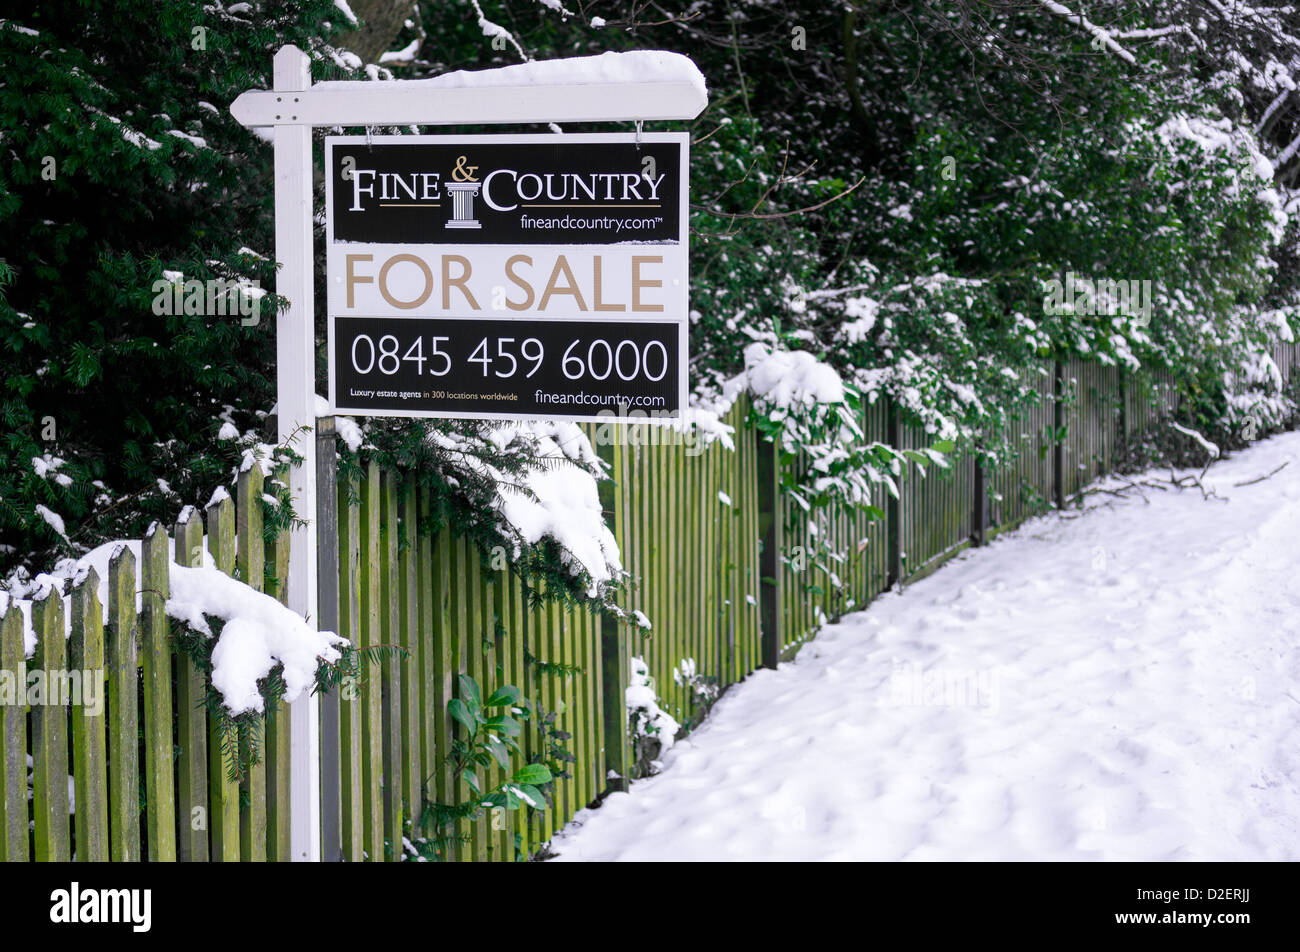 A country house for sale sign in winter. - Stock Image